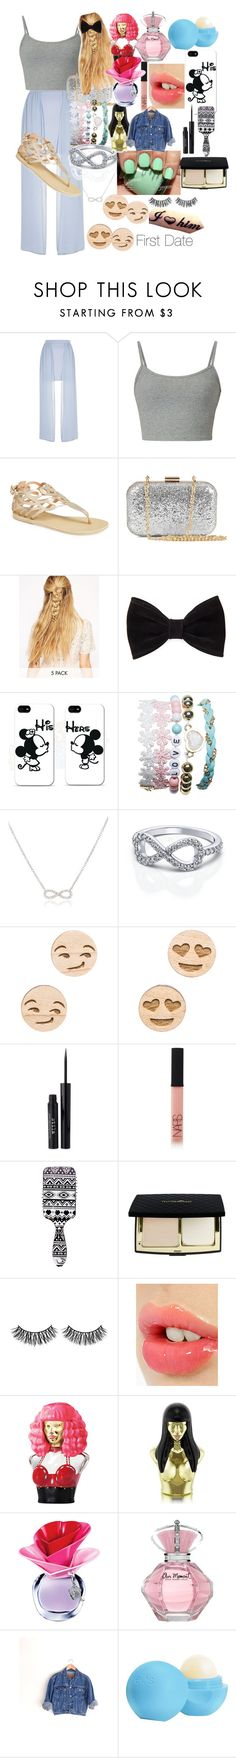 """First Date"" by rosie443 on Polyvore featuring River Island, Ancient Greek Sandals, NLY Accessories, Love Rocks, Forever 21, Samsung, Wet Seal, Adina Reyter, GoodWood and Stila"